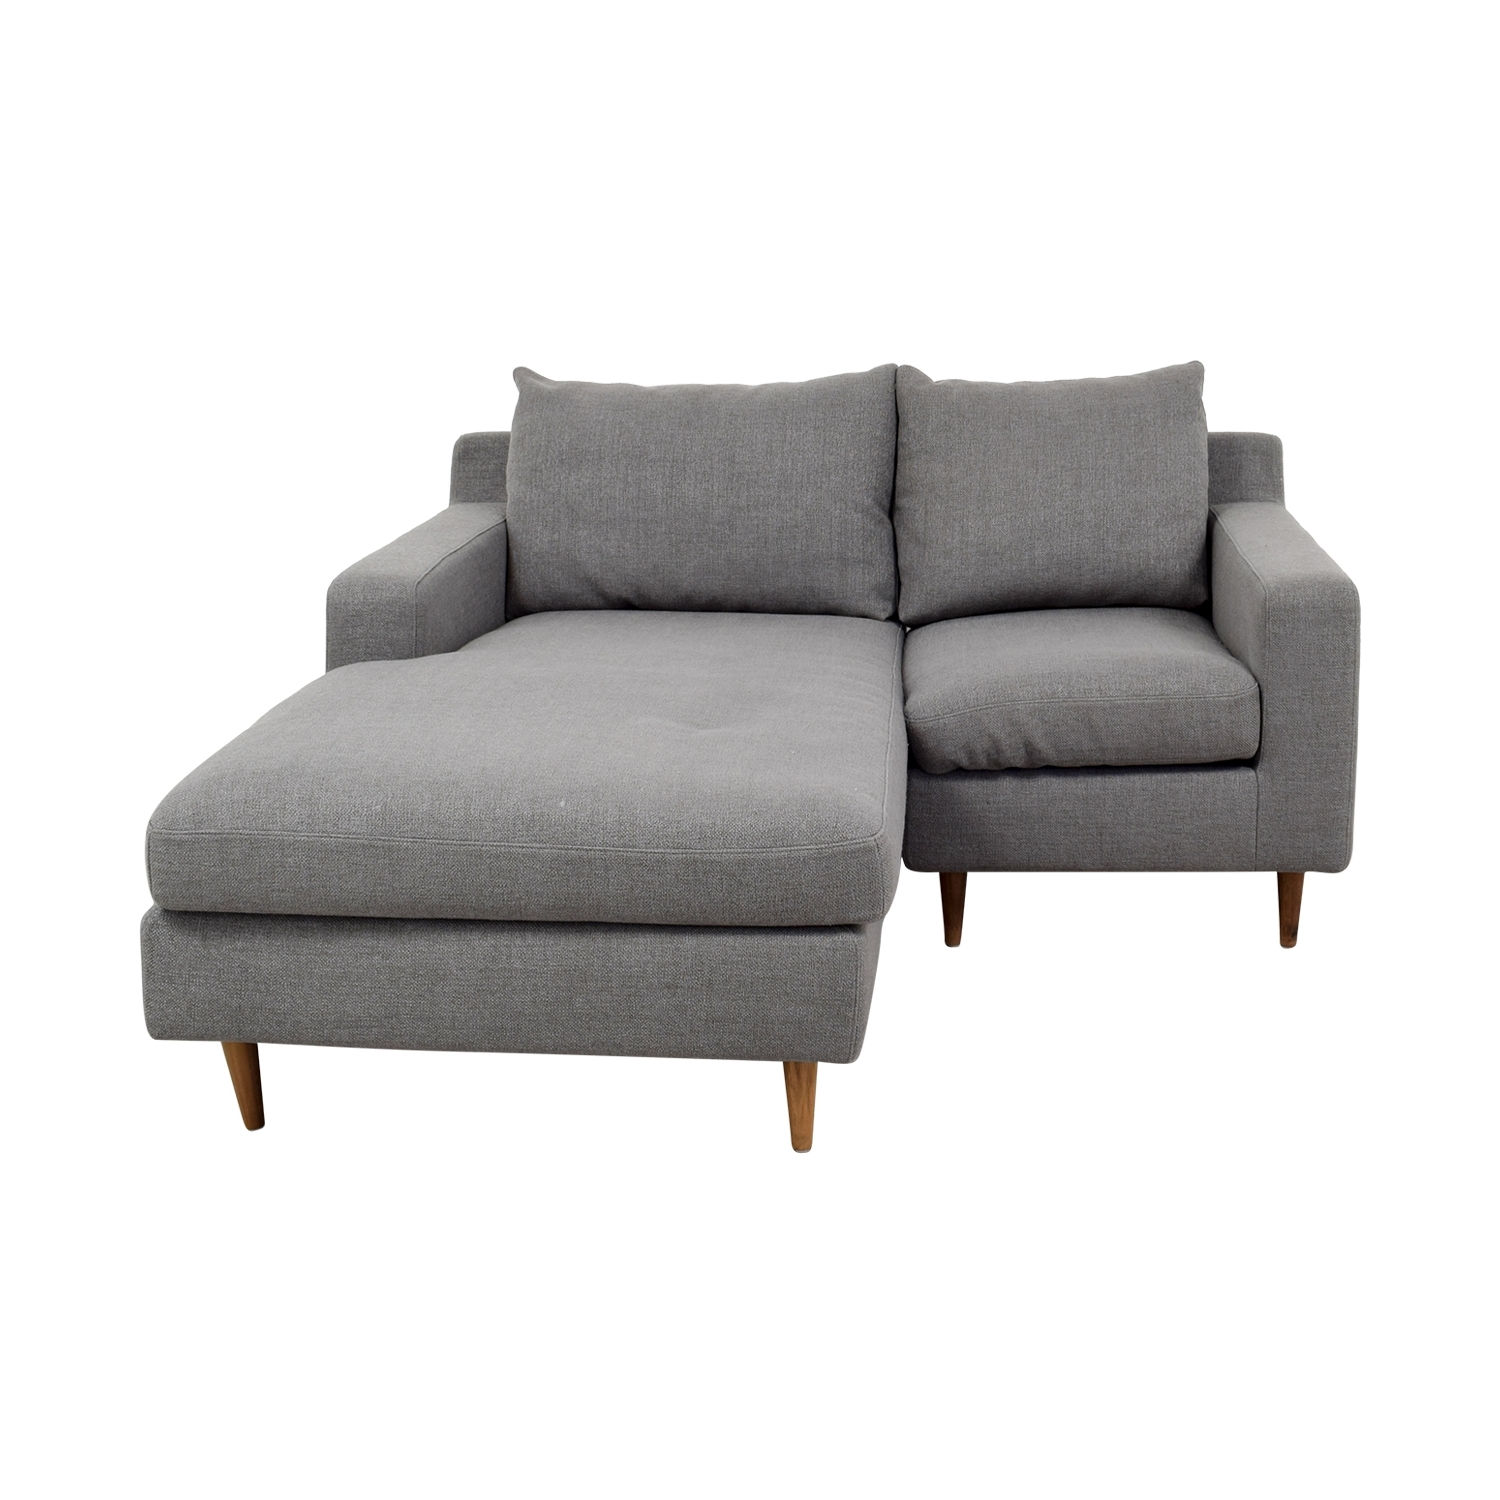 [%80% Off – Interior Define Interior Define Custom Grey Loveseat Intended For 2017 Loveseats With Chaise Lounge|Loveseats With Chaise Lounge Within Well Liked 80% Off – Interior Define Interior Define Custom Grey Loveseat|Latest Loveseats With Chaise Lounge Regarding 80% Off – Interior Define Interior Define Custom Grey Loveseat|Best And Newest 80% Off – Interior Define Interior Define Custom Grey Loveseat Inside Loveseats With Chaise Lounge%] (View 4 of 15)